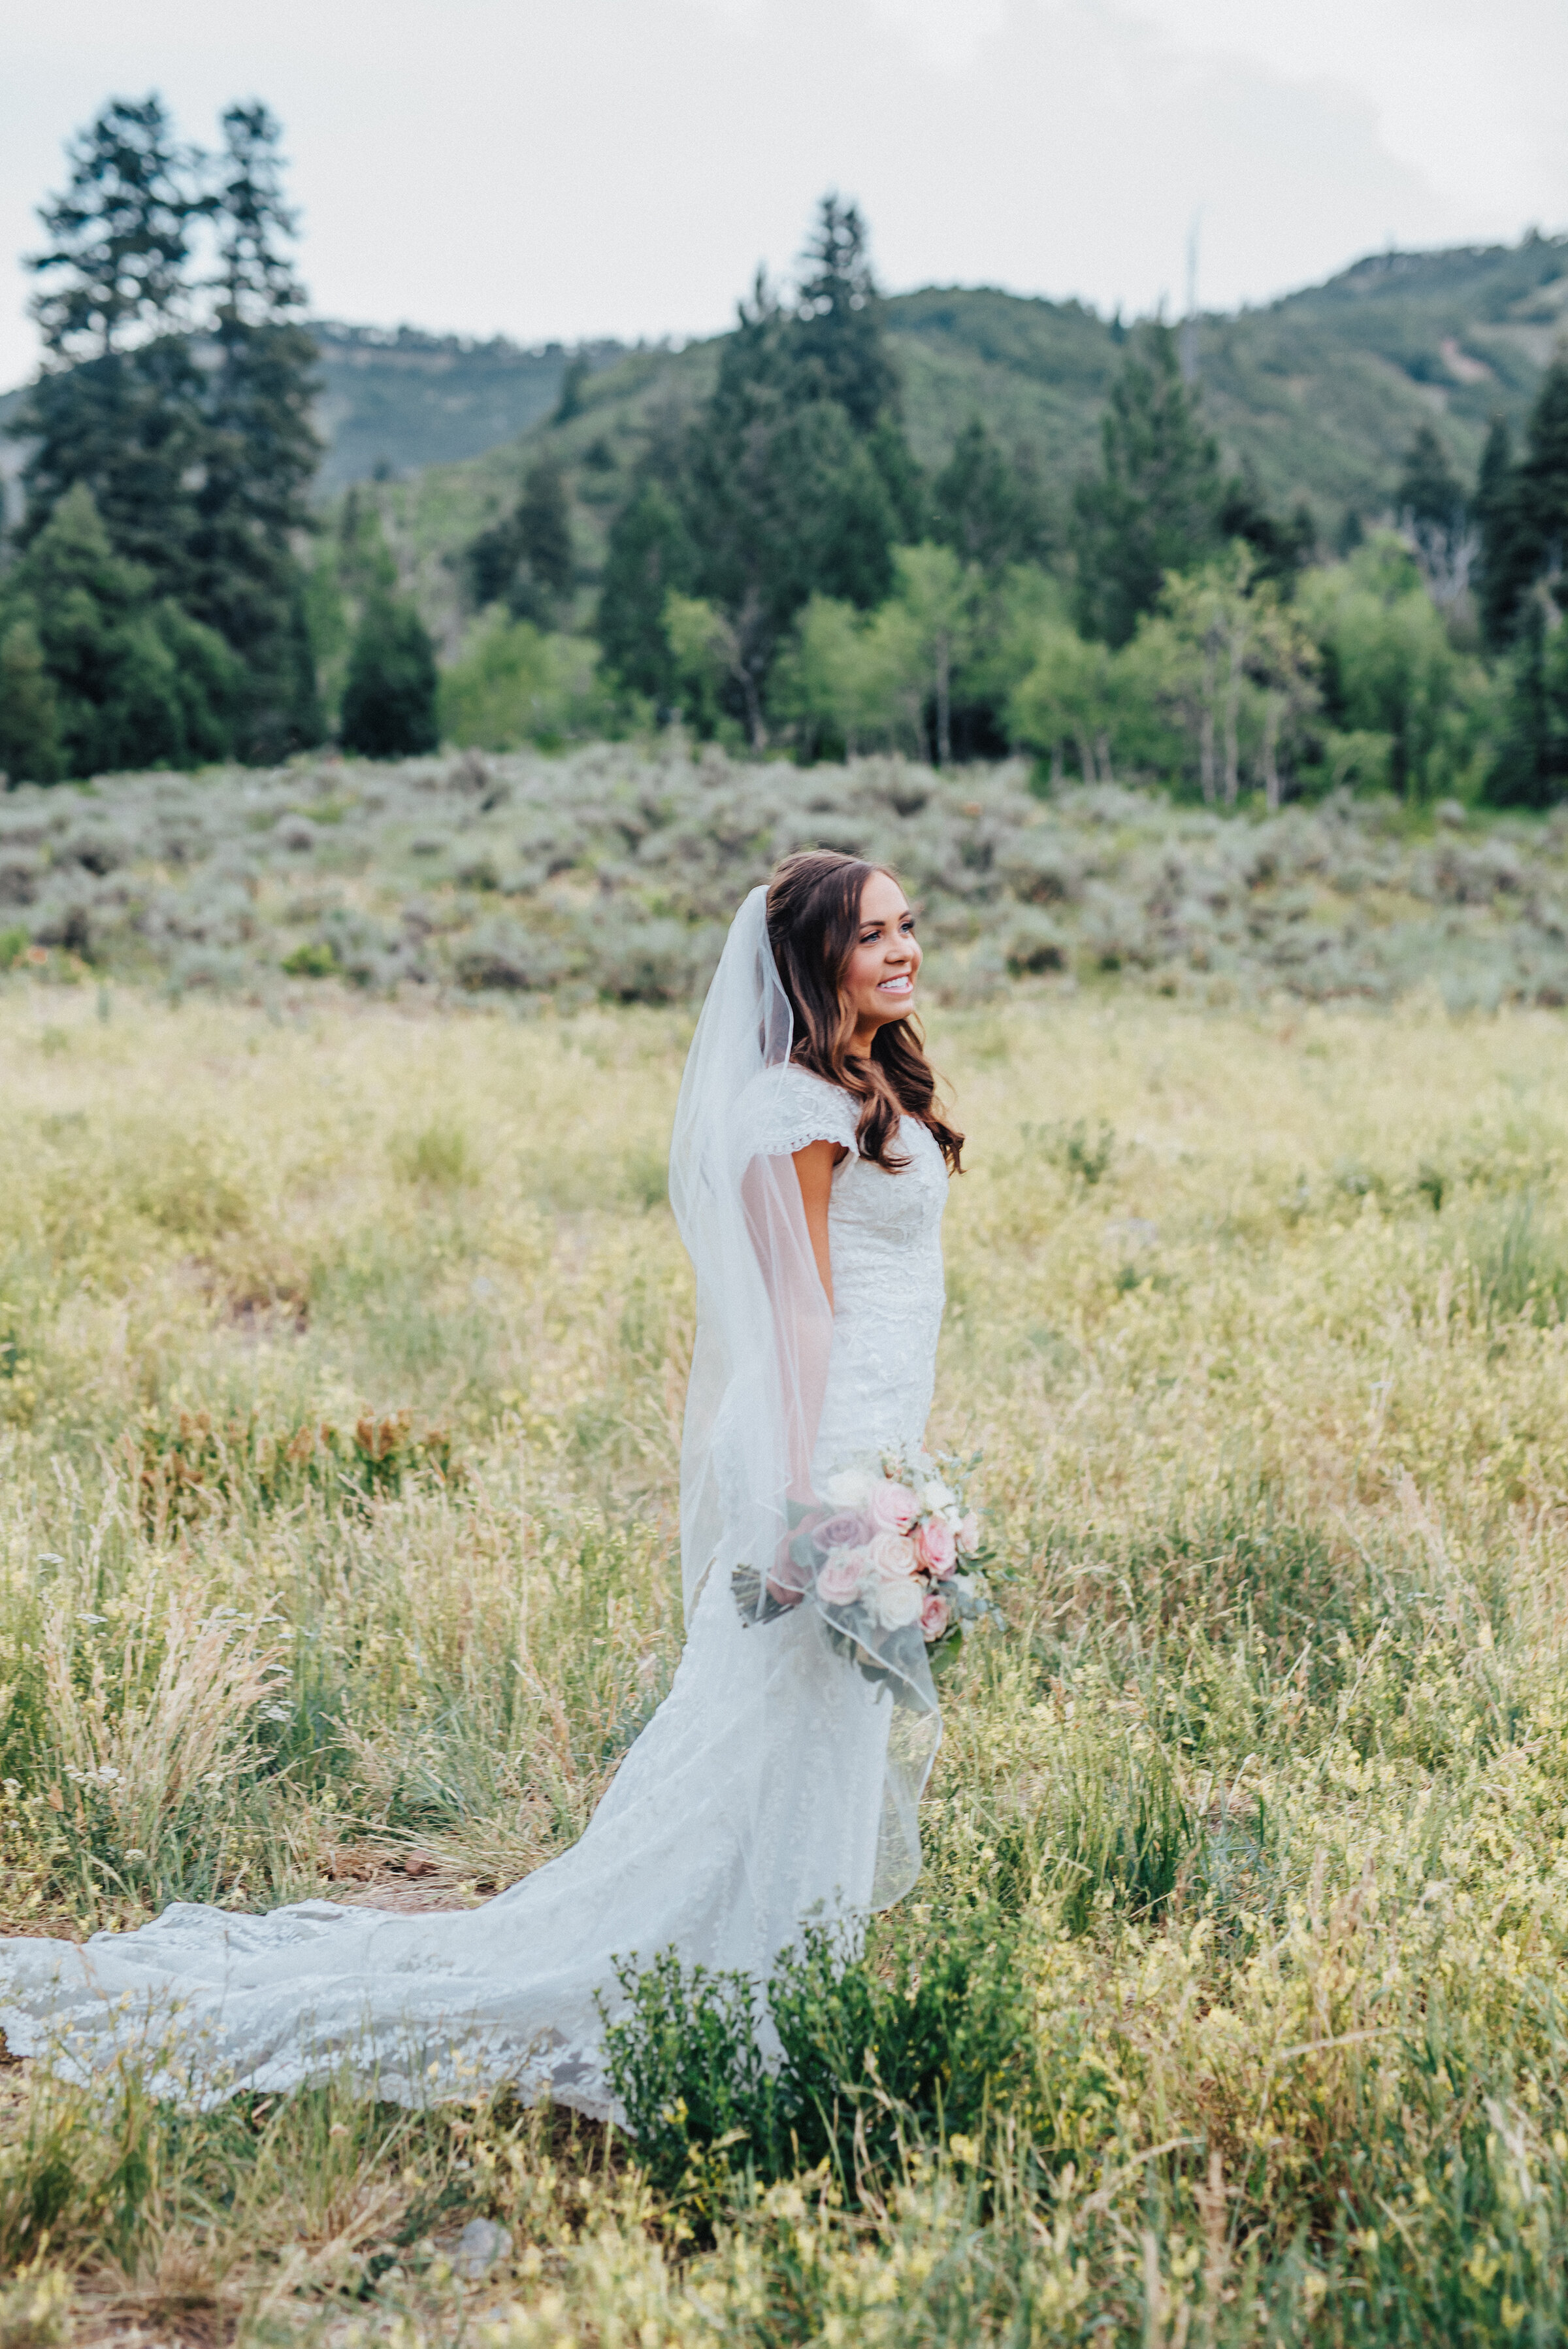 A lovely bride holds her bouquet tightly at her side while smiling and looking across a grassy field in American Fork canyon. Tibble Fork reservoir overlook grassy hillside evergreen trees woodsy scenery bridal shot light pink bouquet mountains in the background long veil #bridals #younglove #tibbleforkreservoir #utahwedding #americanforkcanyon #coupleshoot #formals #weddingphotography #couplesgoals #couplephotography #weddingphotographer #pinkbouquet #bride #rollinghills